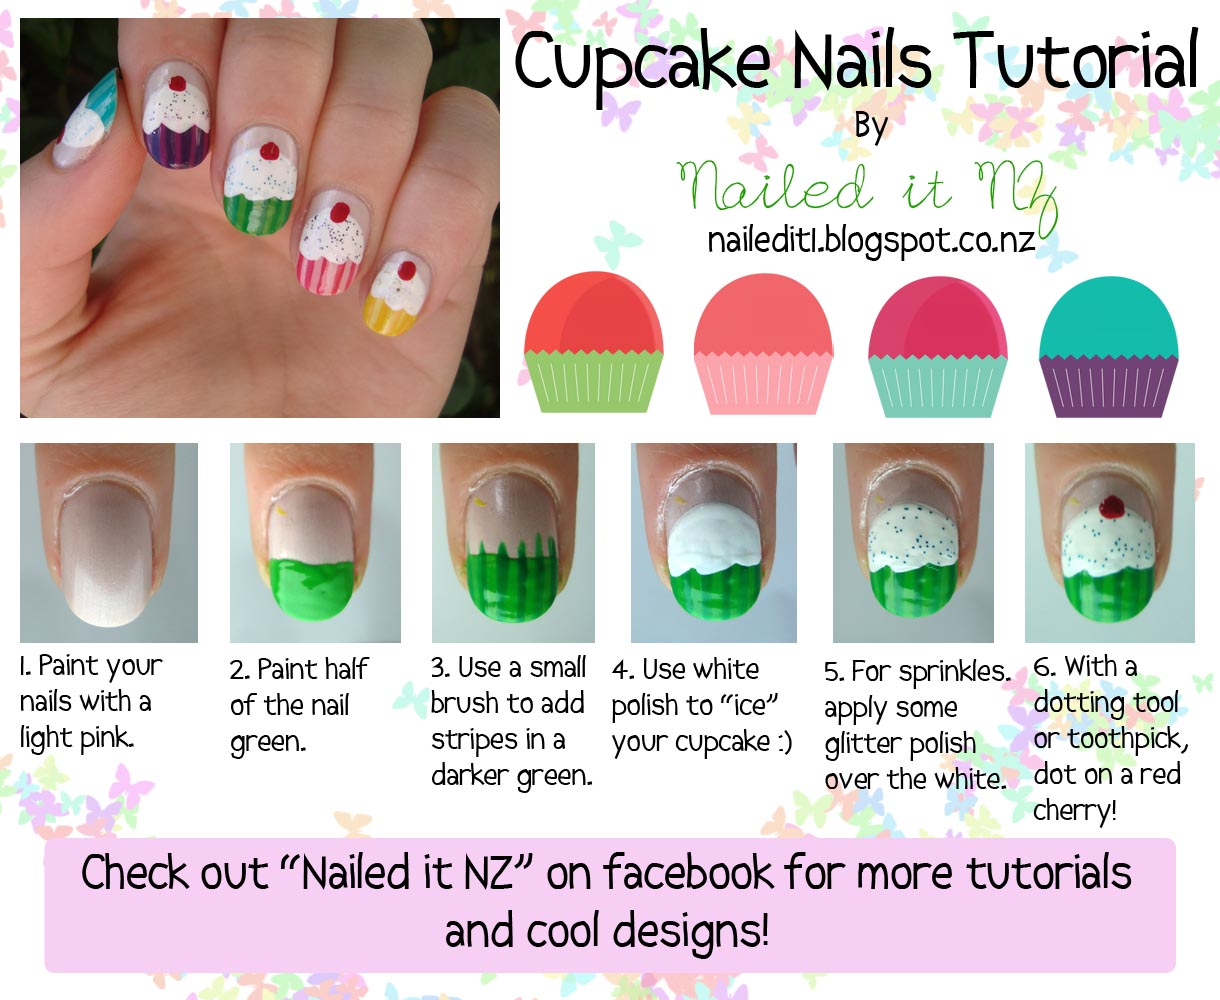 Nail art for short nails #6: Cupcake Nails